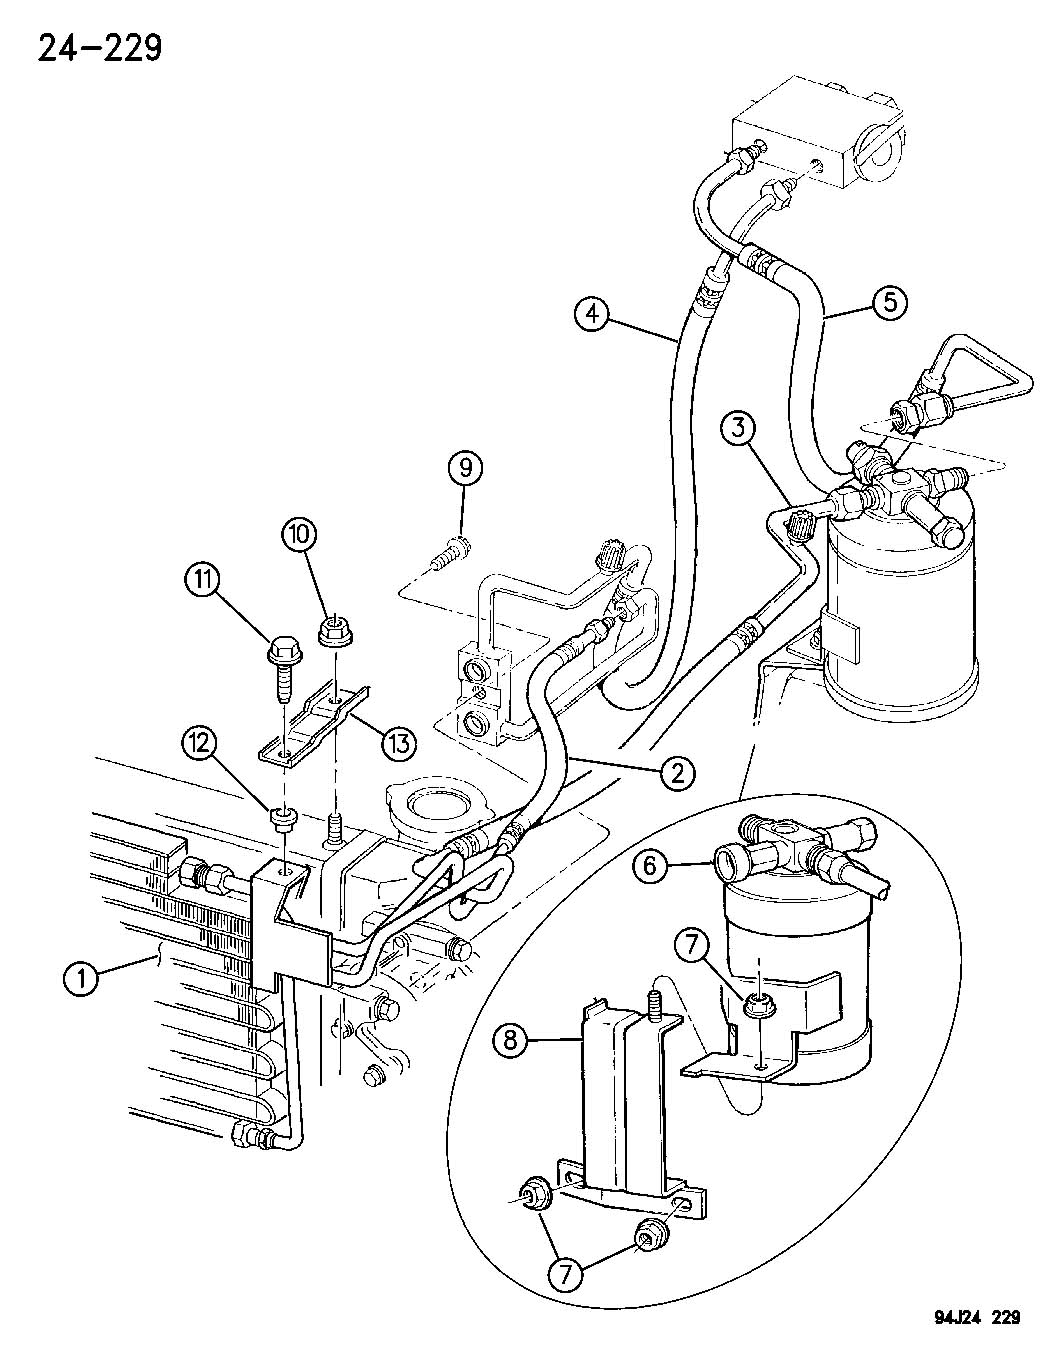 04 Jeep Wrangler Engine Diagram